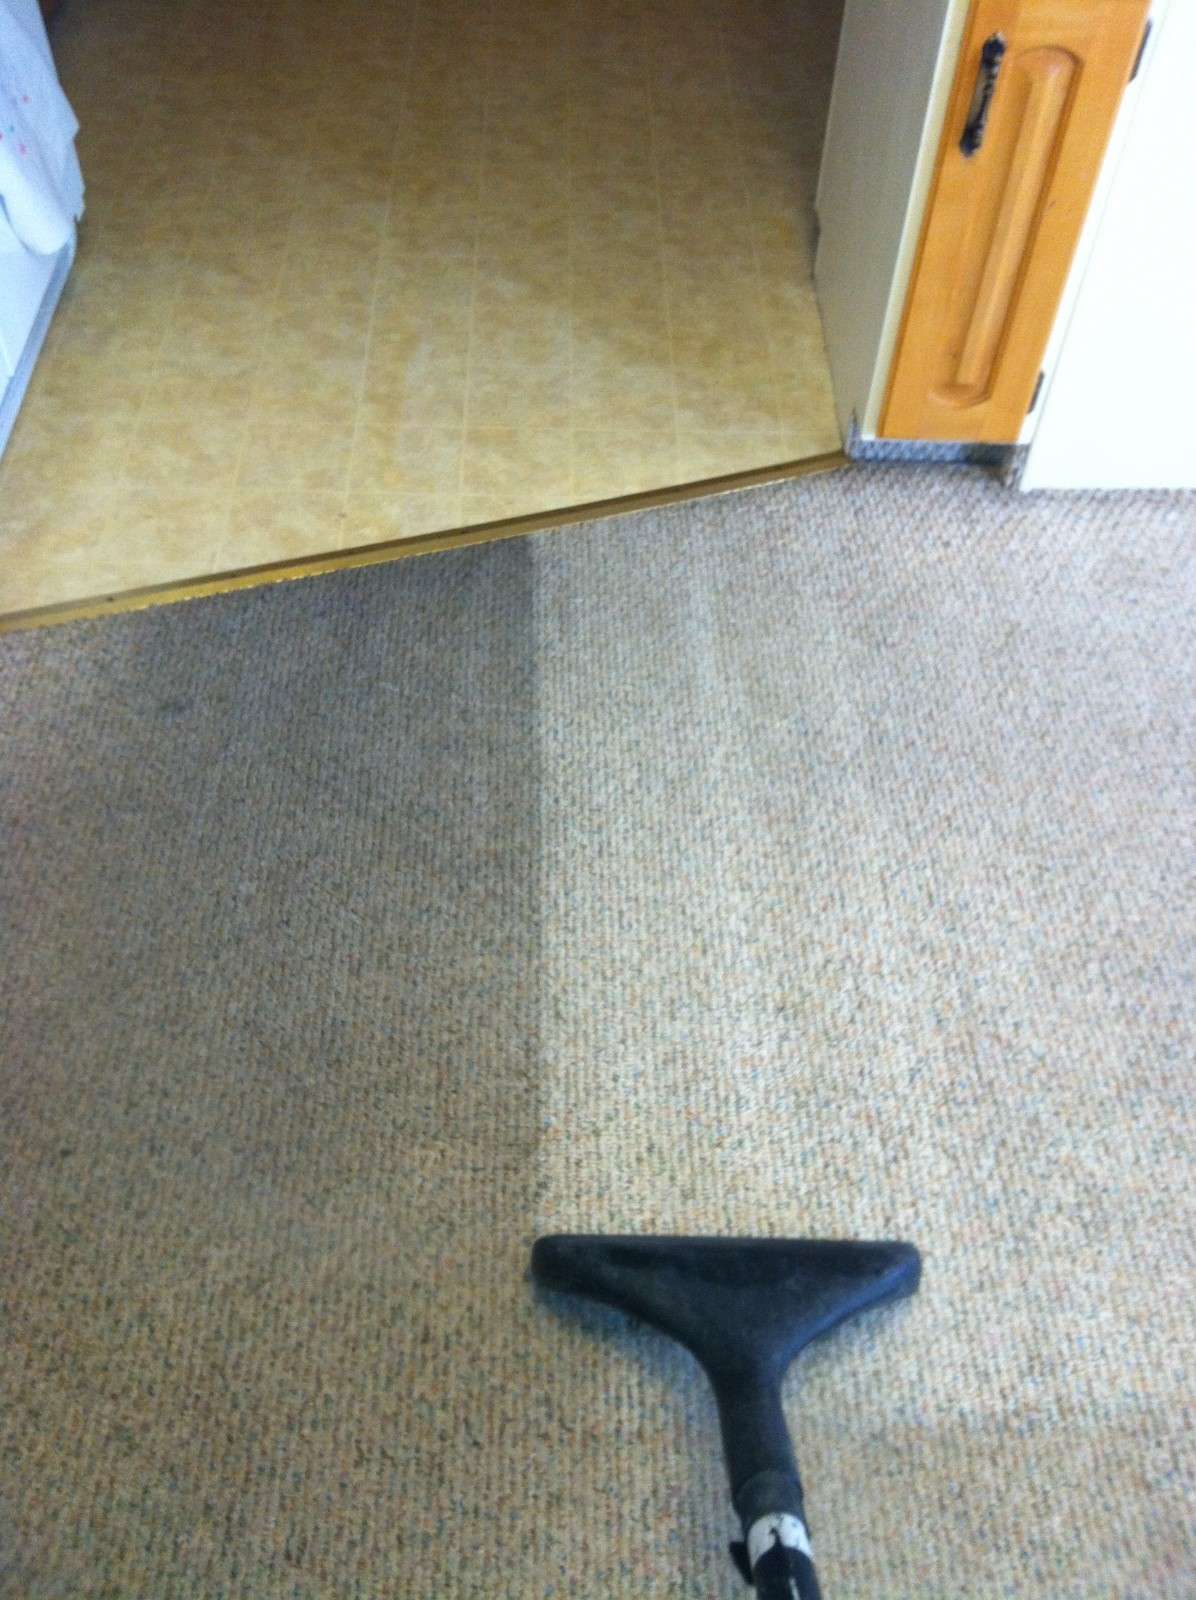 carpet 3 rooms for 1000. 3 rooms of residue free, truck mount carpet cleaning for $89 (a $120 value)! you may match this offer by calling the office \u0026 mentioning \ 1000